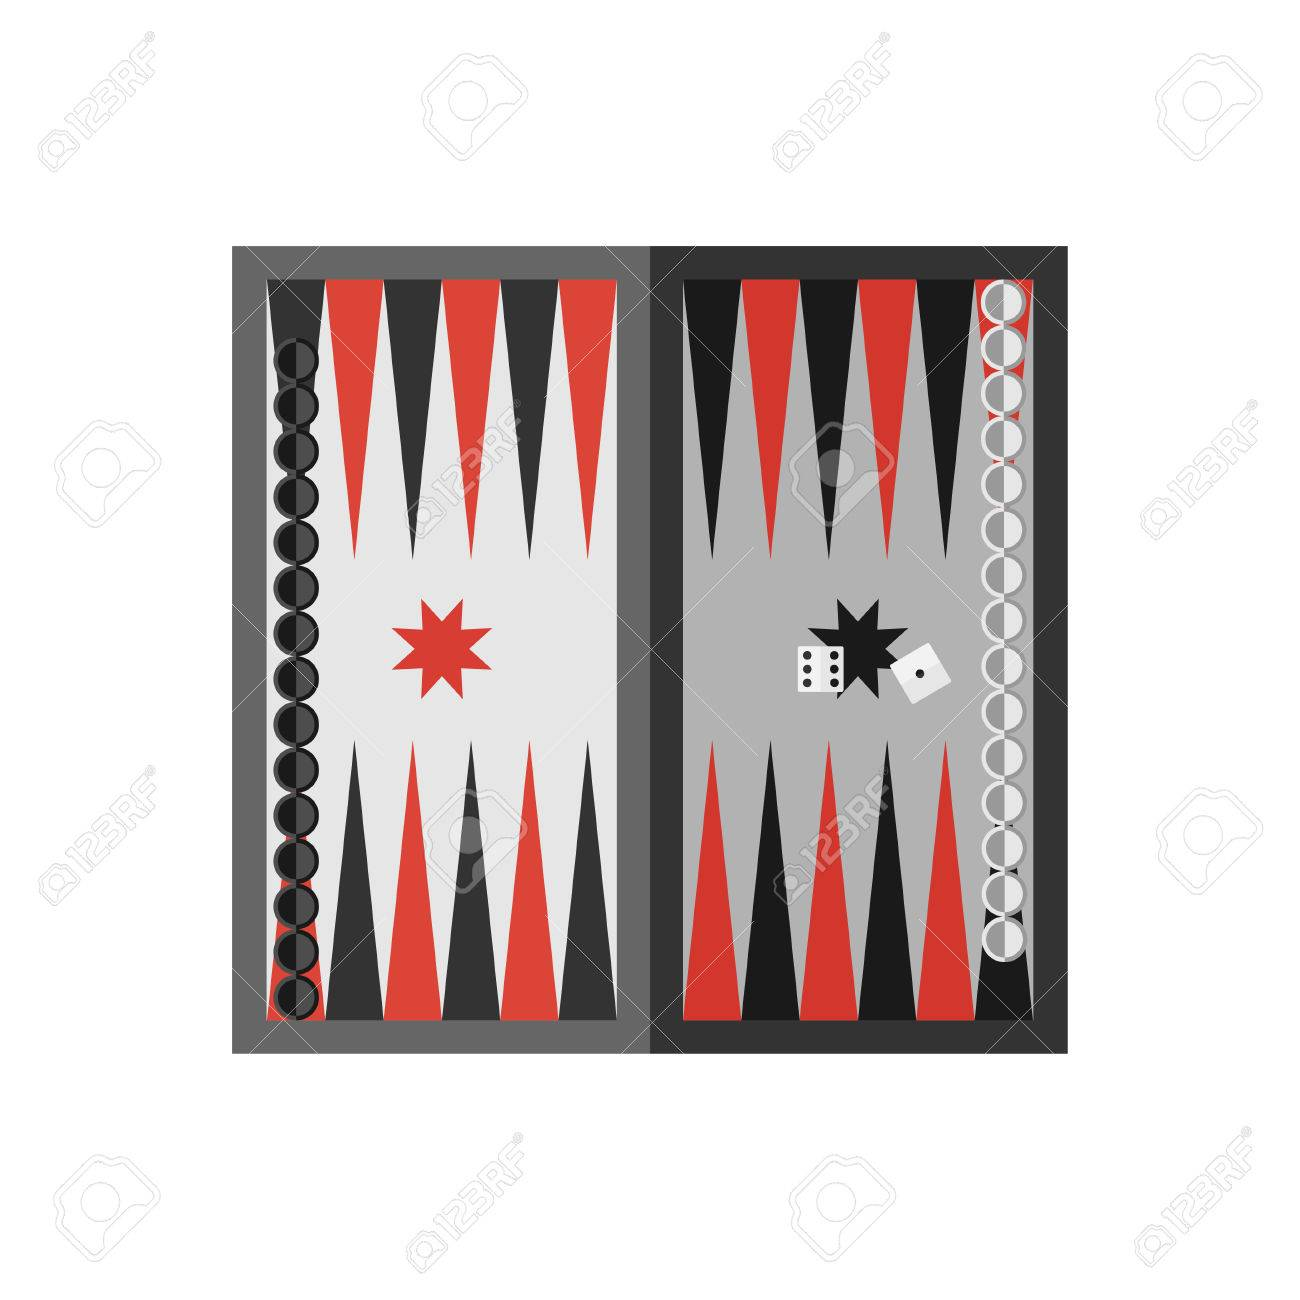 Simple table free other icons - Vector Vector Flat Simple Backgammon Table With Dices Icon Sport Illustration